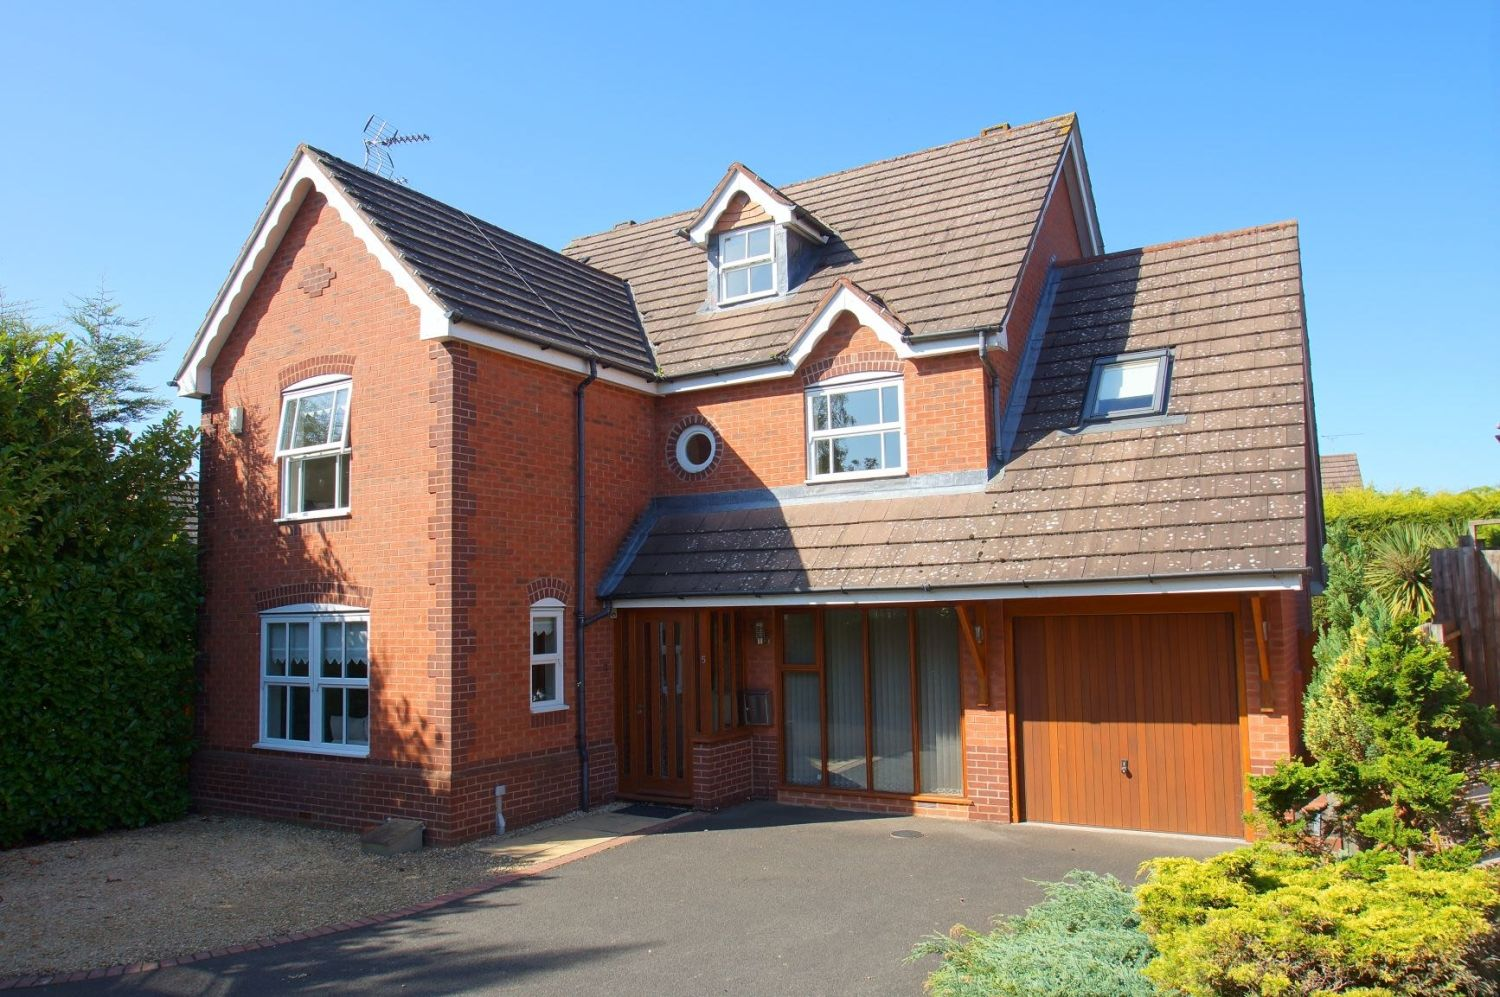 4 bed detached for sale in Acre Lane, Webheath 1